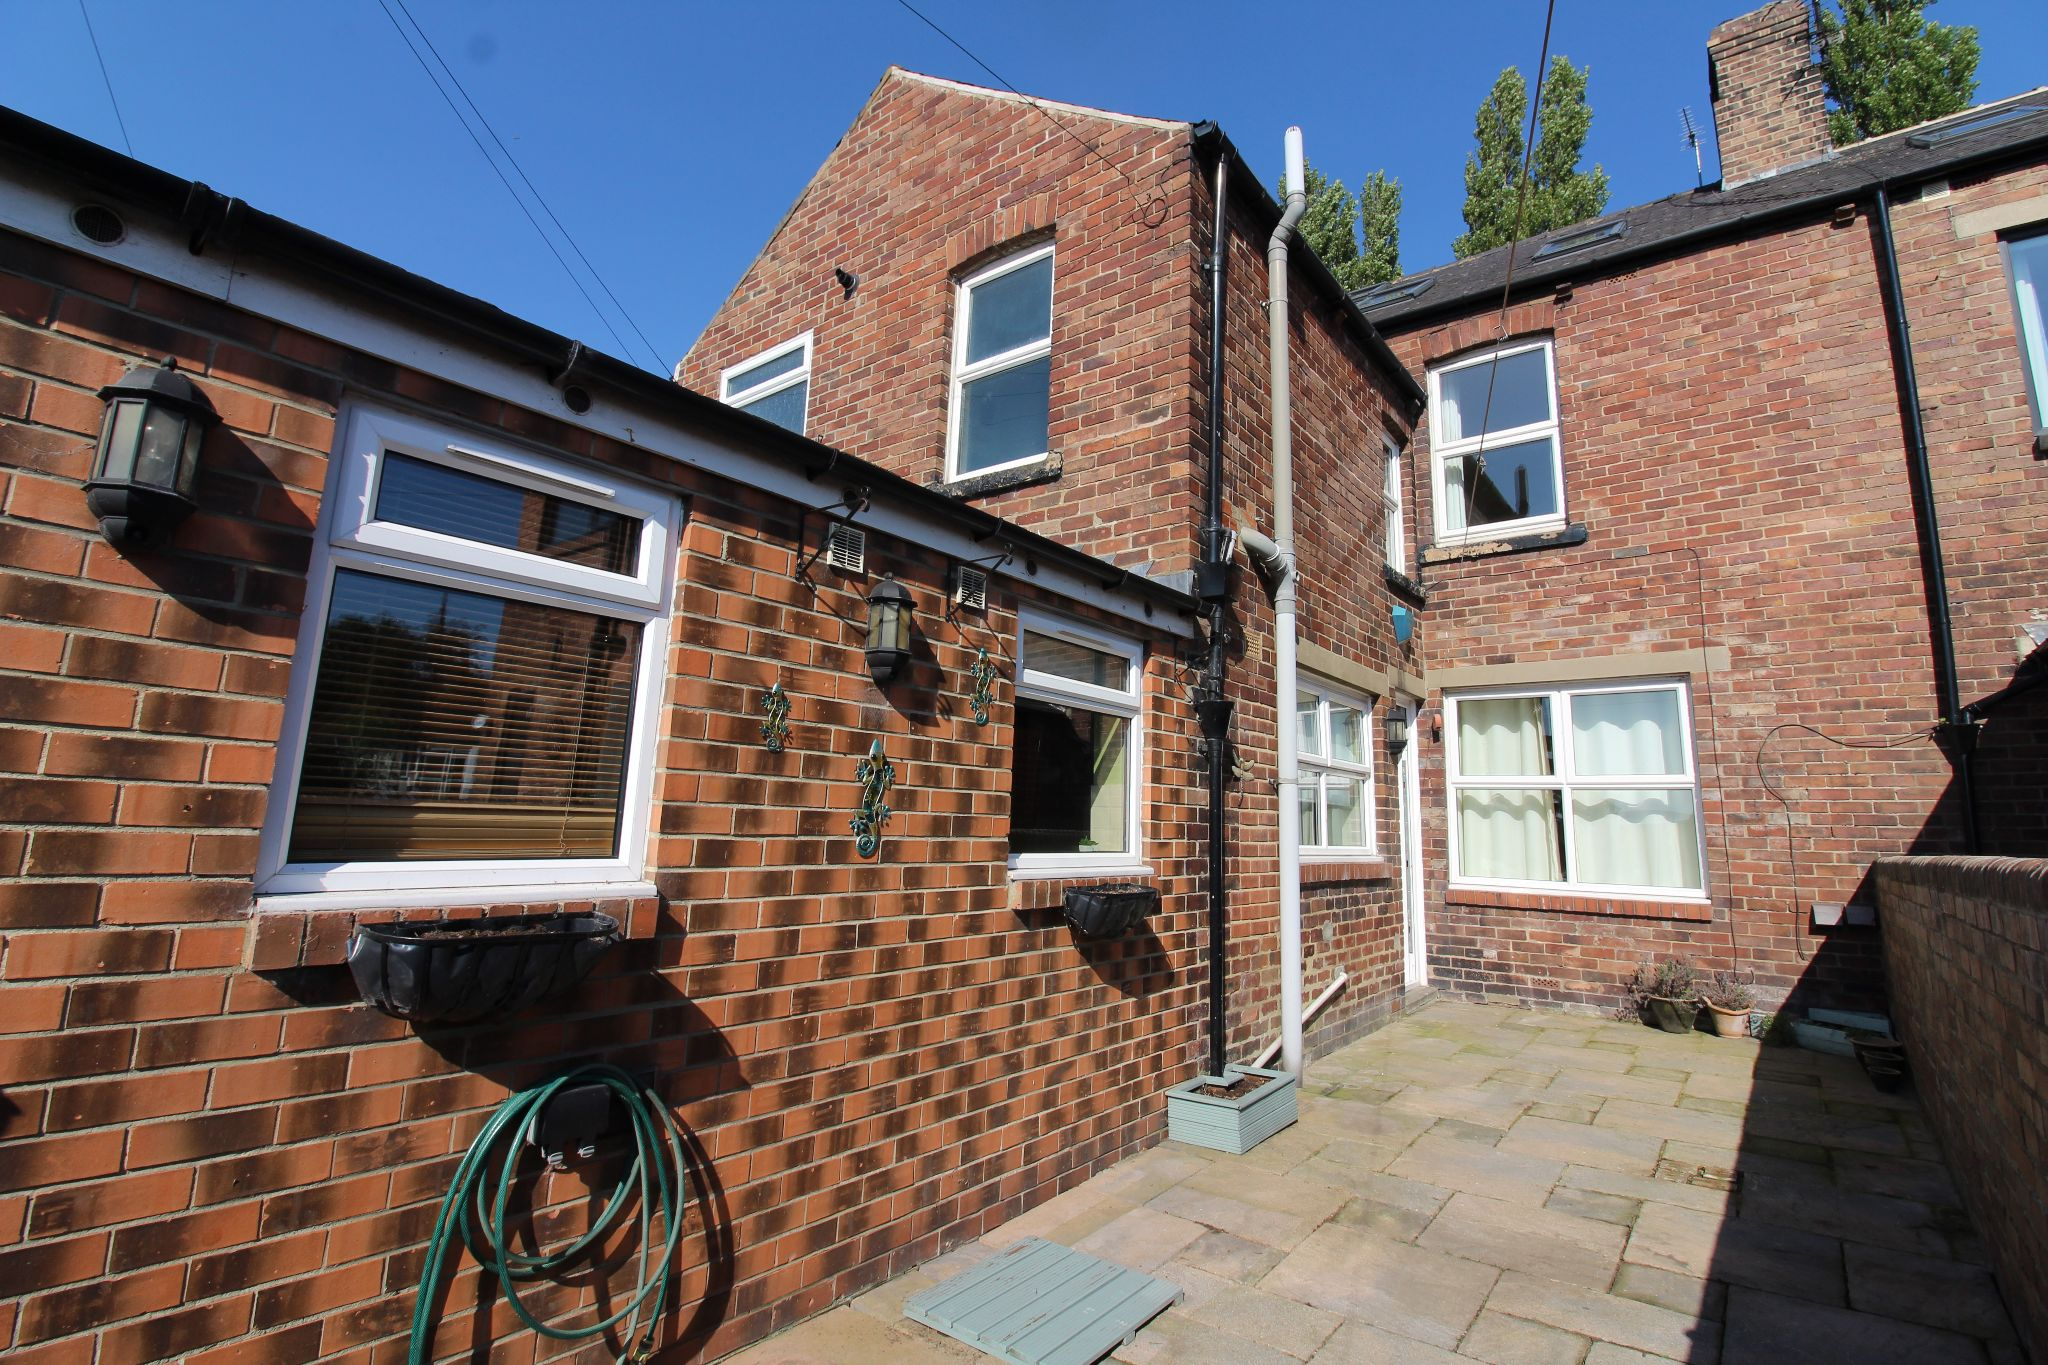 4 bedroom mid terraced house Sale Agreed in Willington - Photograph 9.